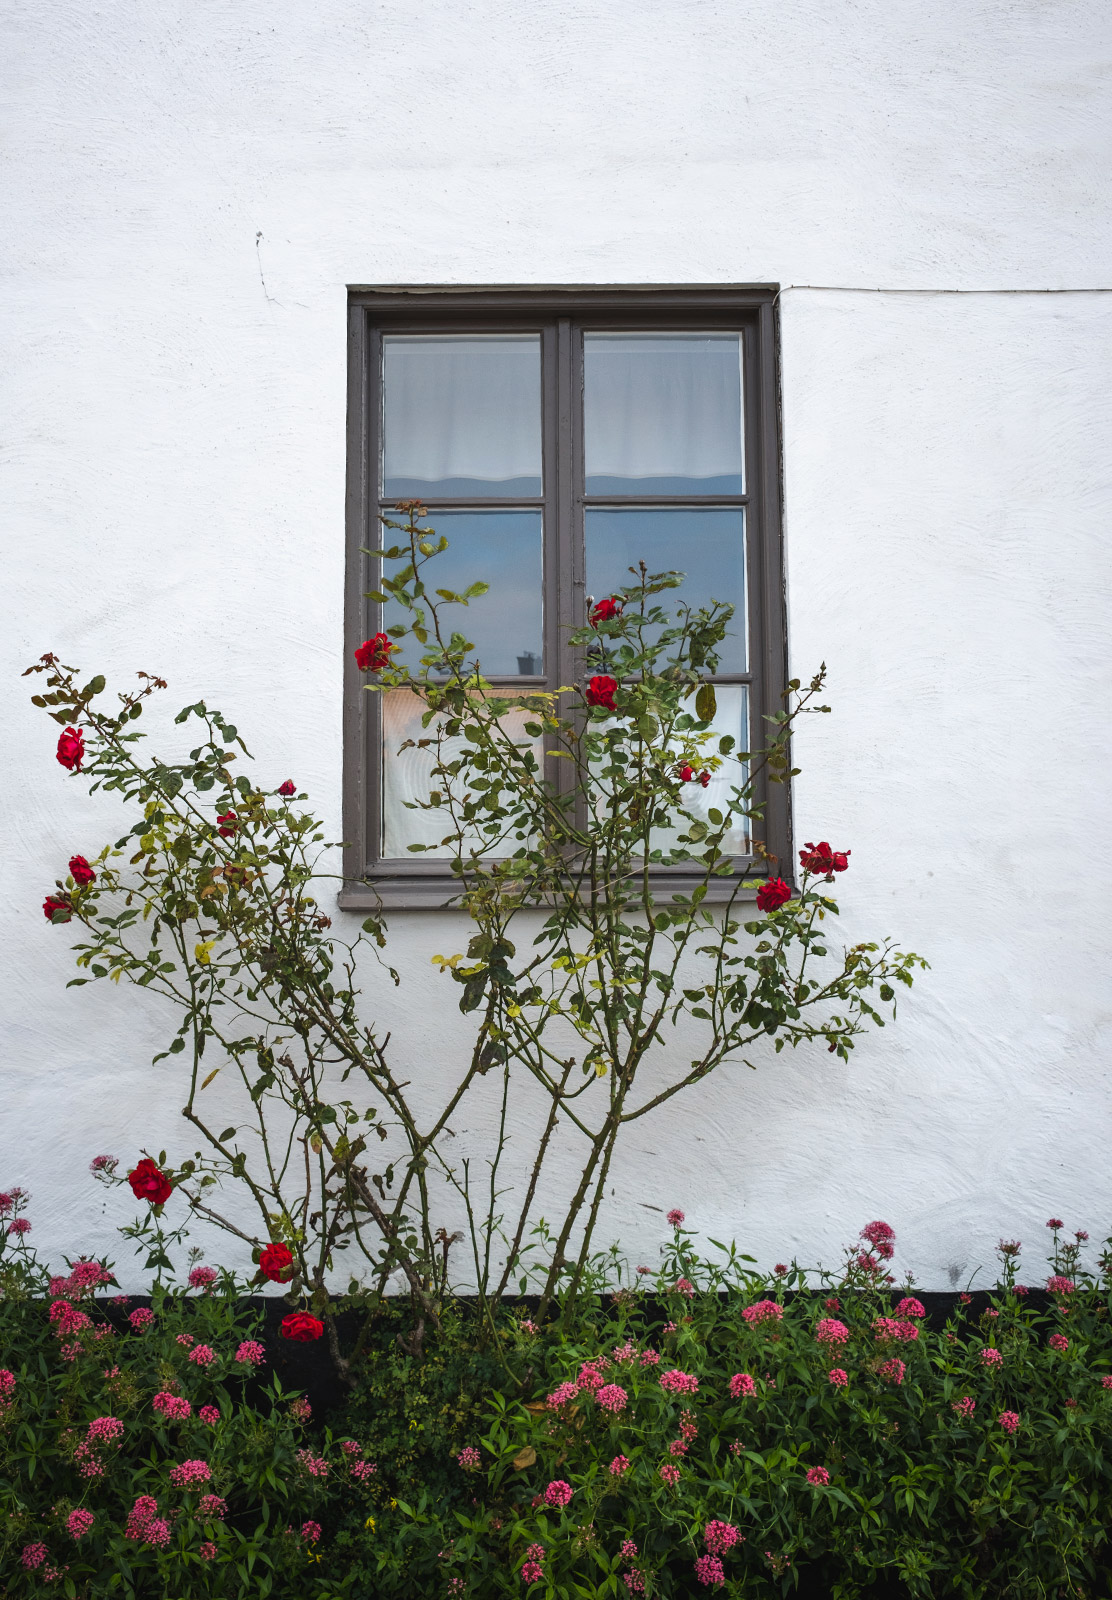 Red roses against window